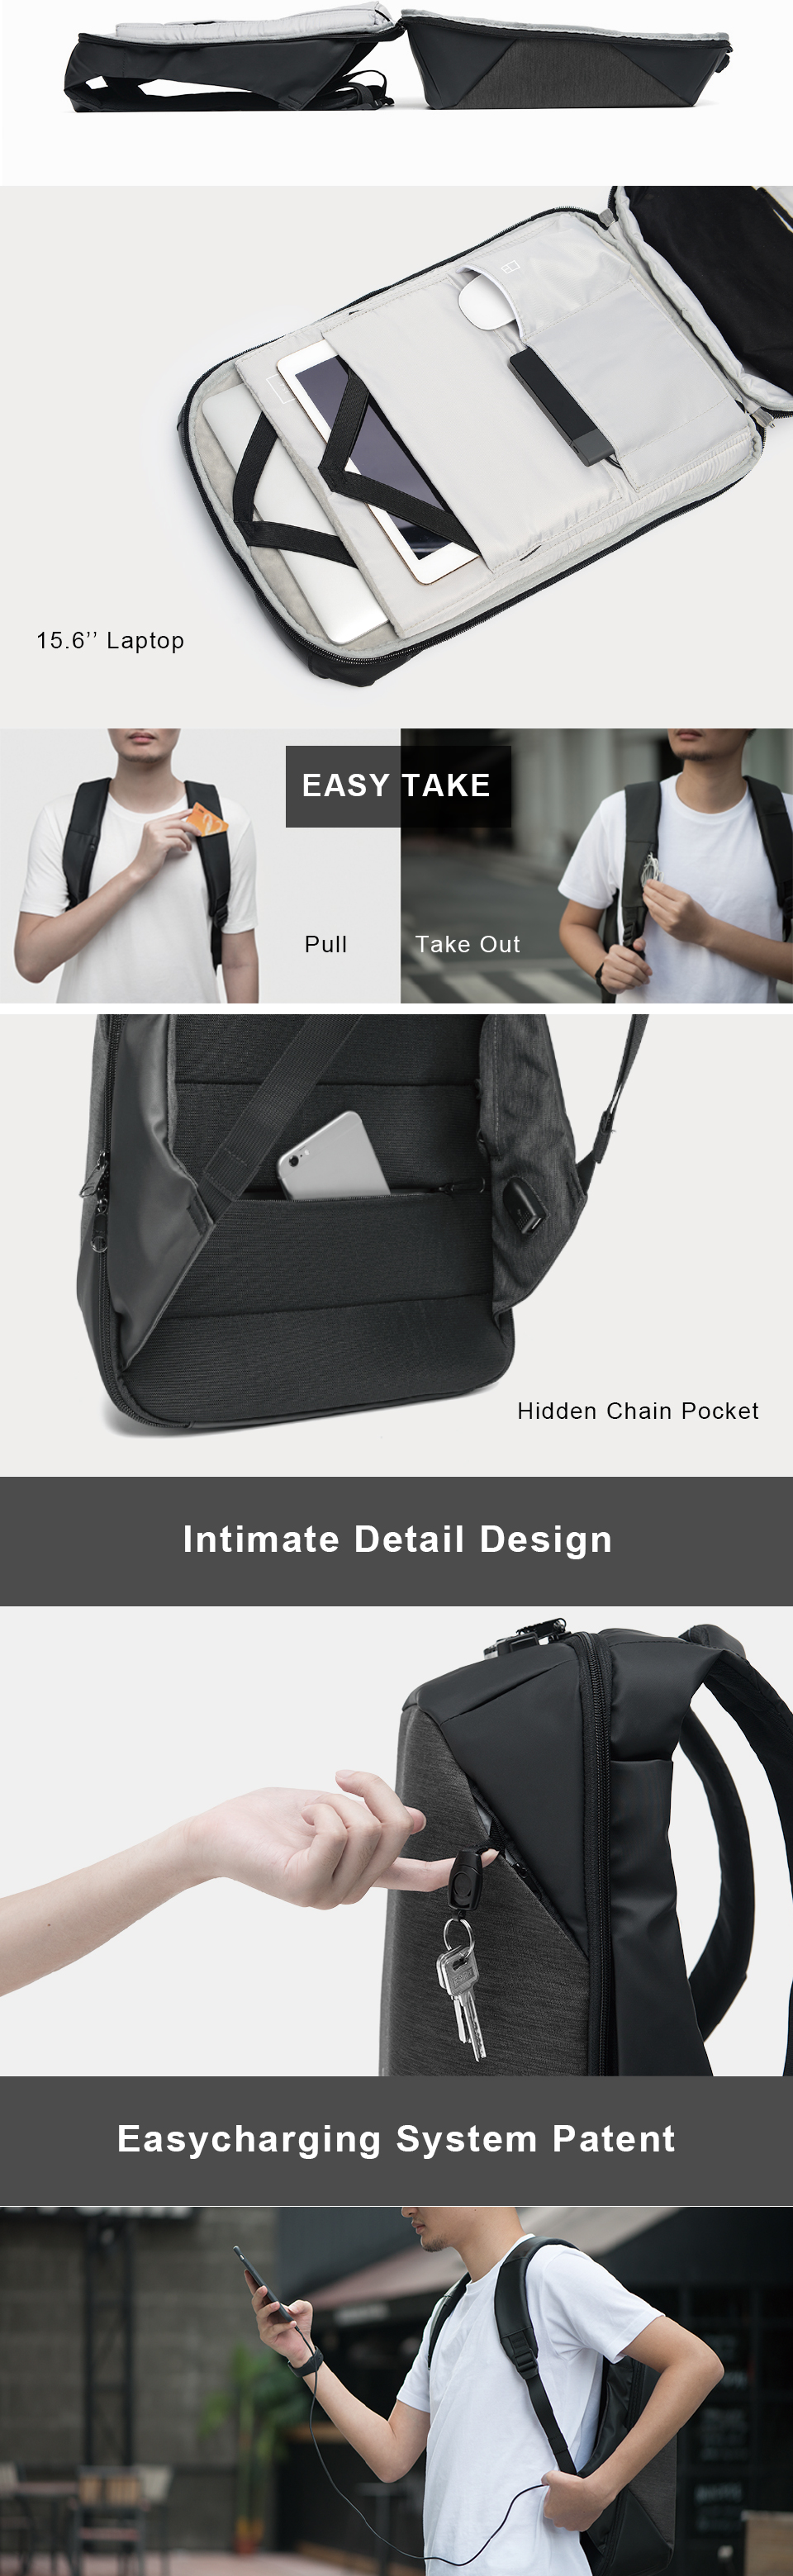 Kingsons Click Anti-thief Solid Backpacks Scientific Storage System Bags External USB Charging Laptop Backpack For Man And Wome